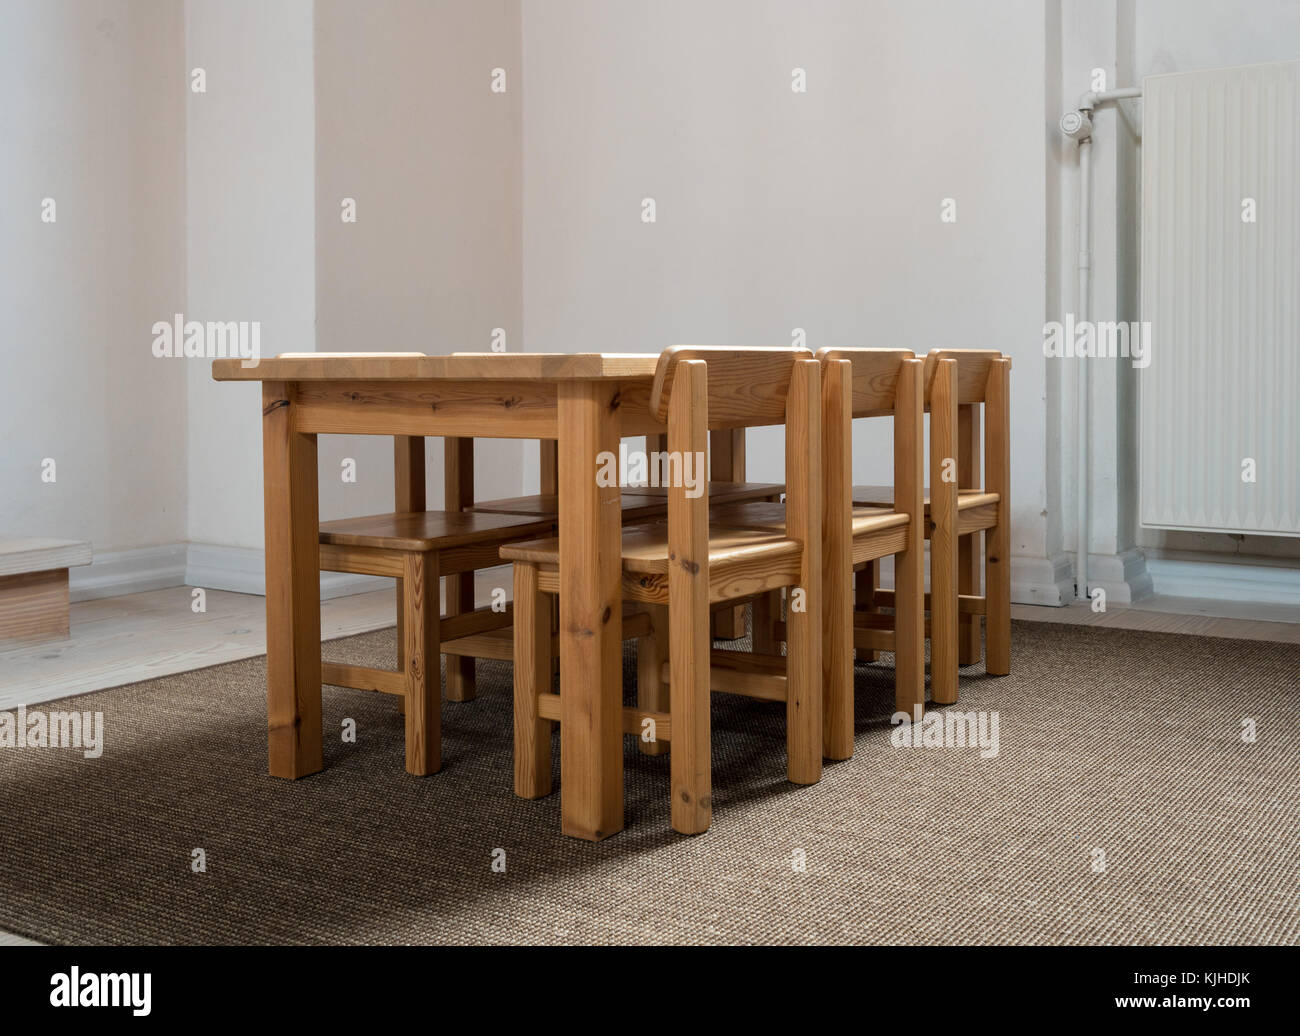 Child Sized Table And Six Chairs In Classroom